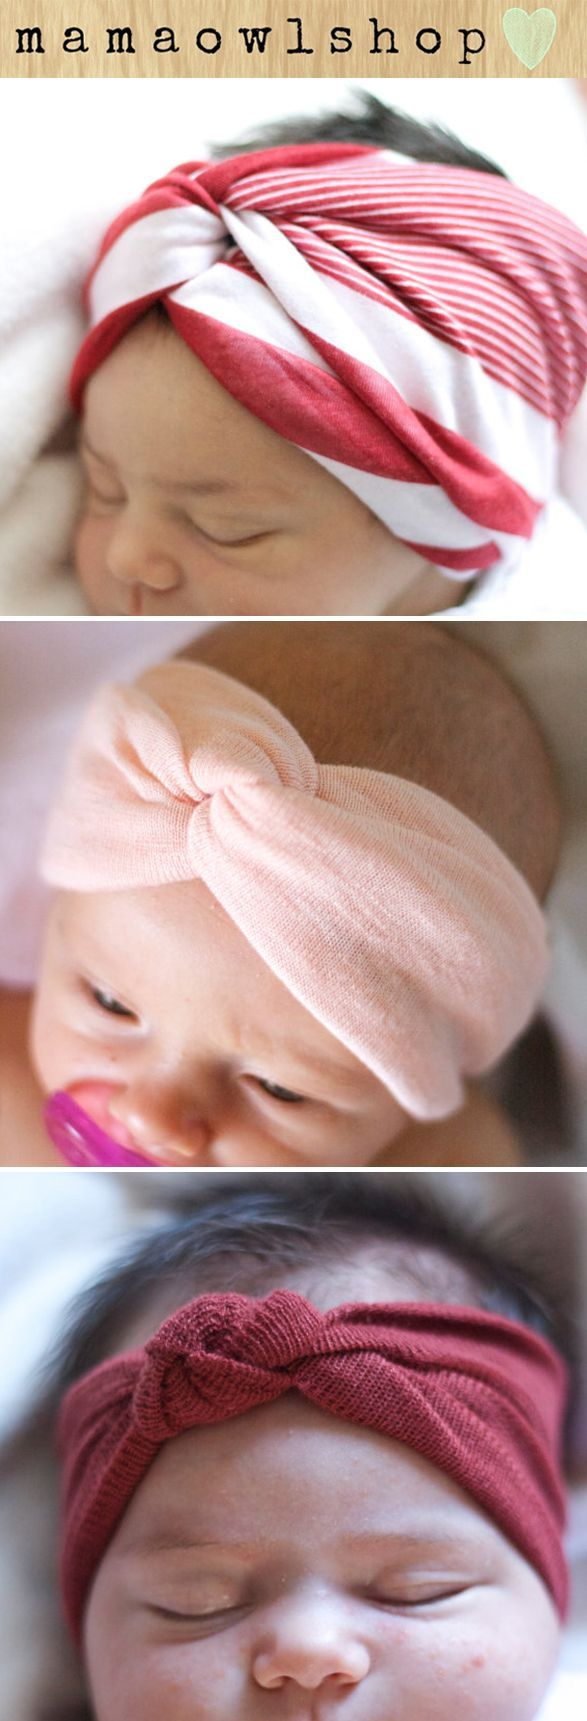 Macys baby hair accessories - Baby Head Wraps No Instructions I M Sure I Can Figure It